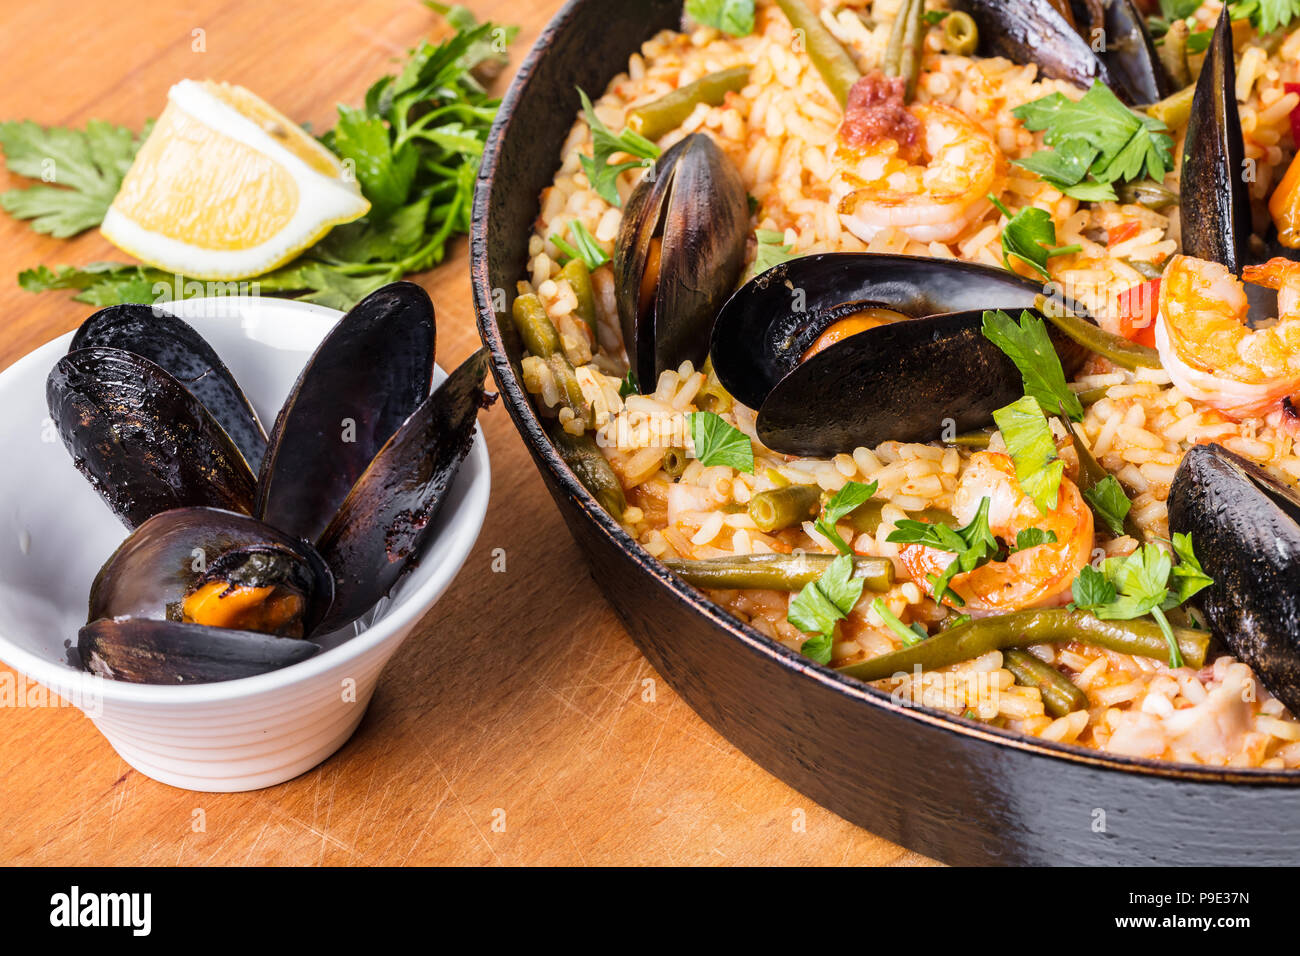 Spanish cuisine, paella with seafood and vegetables Stock Photo